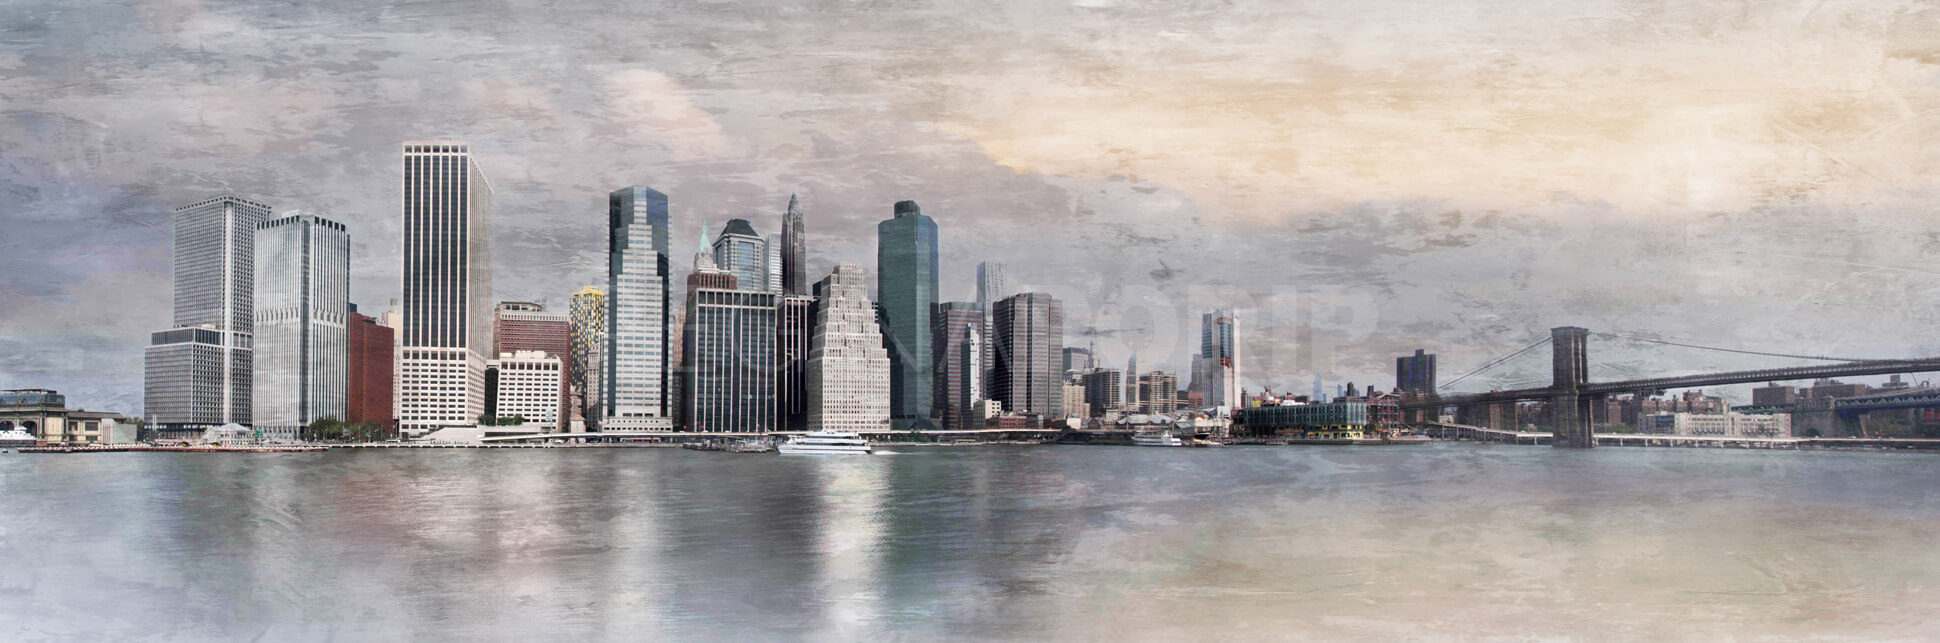 New York City Skyline 15 – 150 X 50 CM